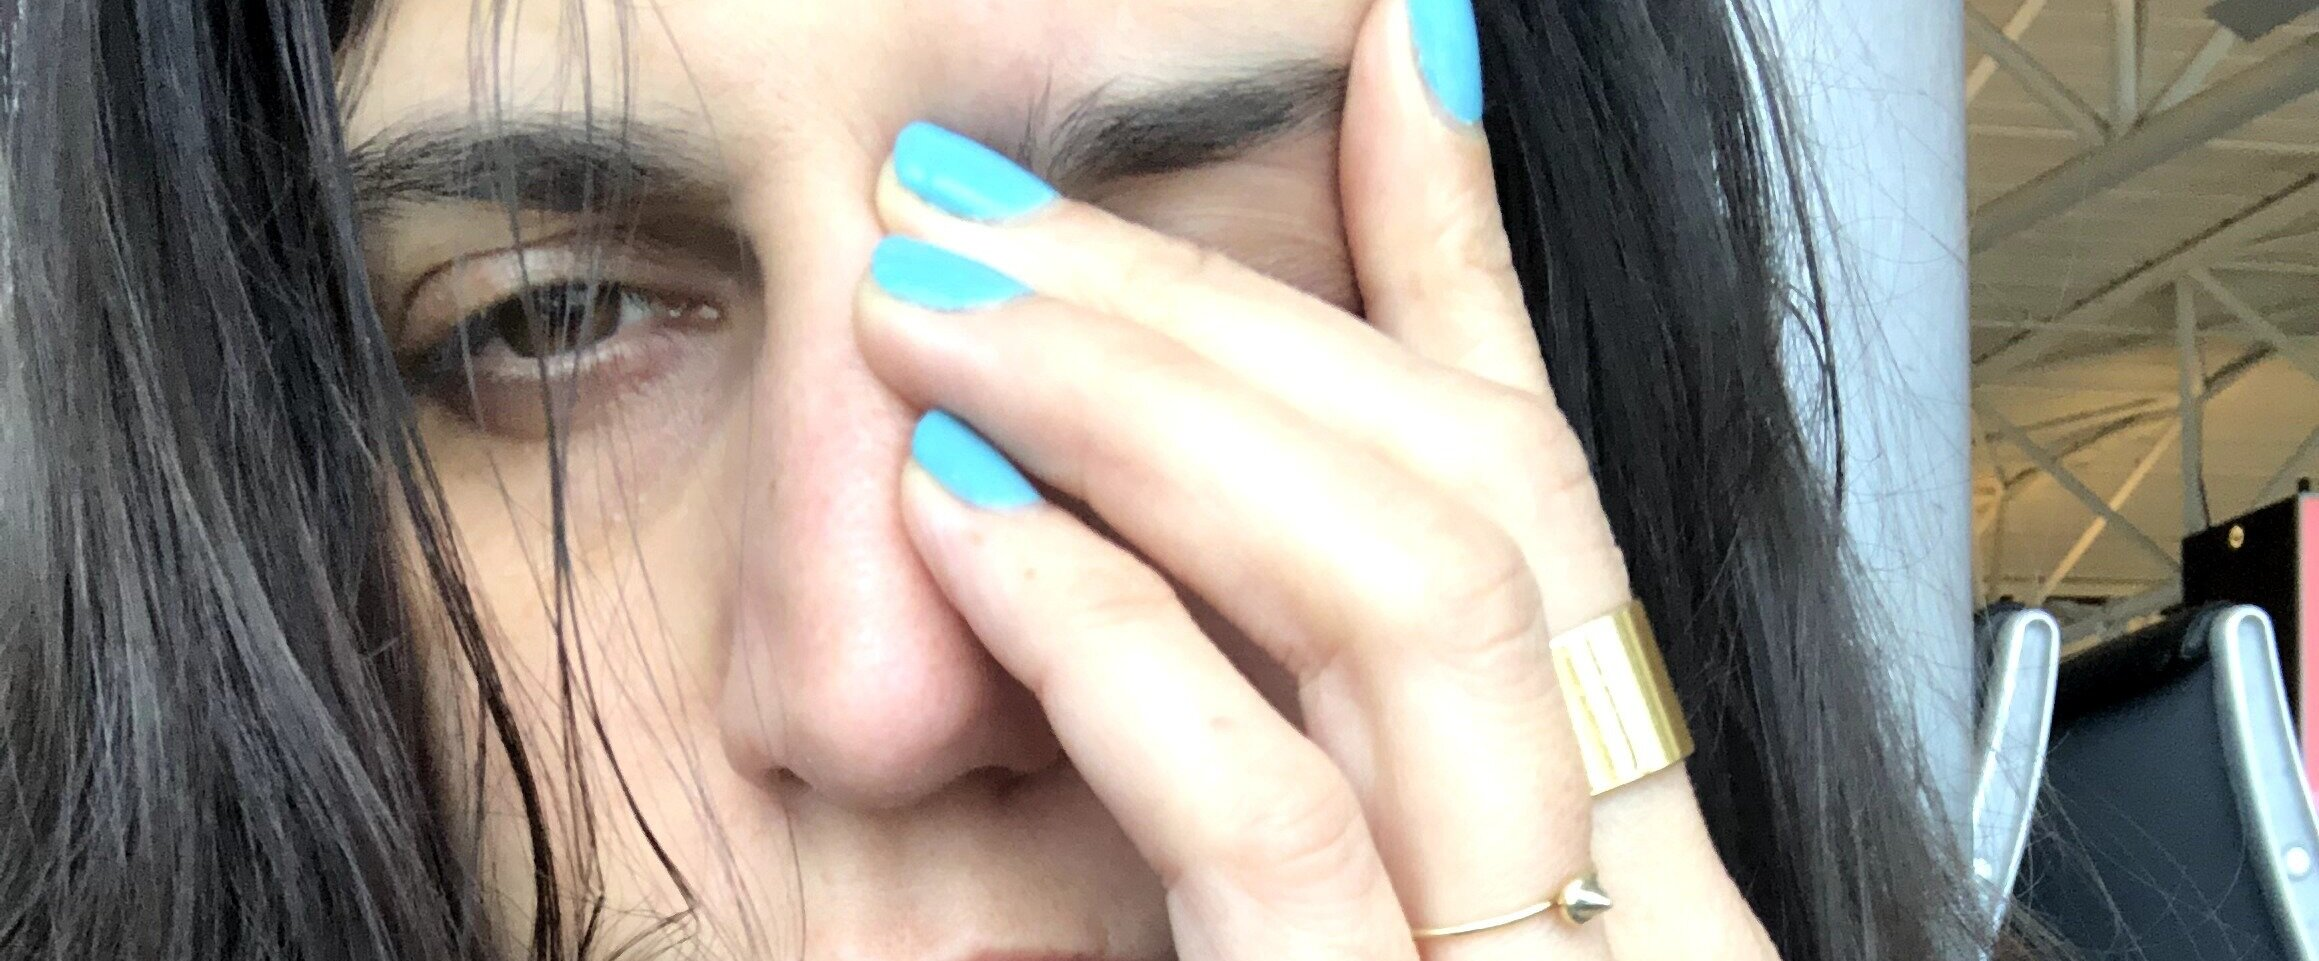 A picture I took of myself with my hand over my left eye, the one that always gets the migraines behind it, looking squinty and kind of pathetic. But wearing some good rings and turquoise nail polish.